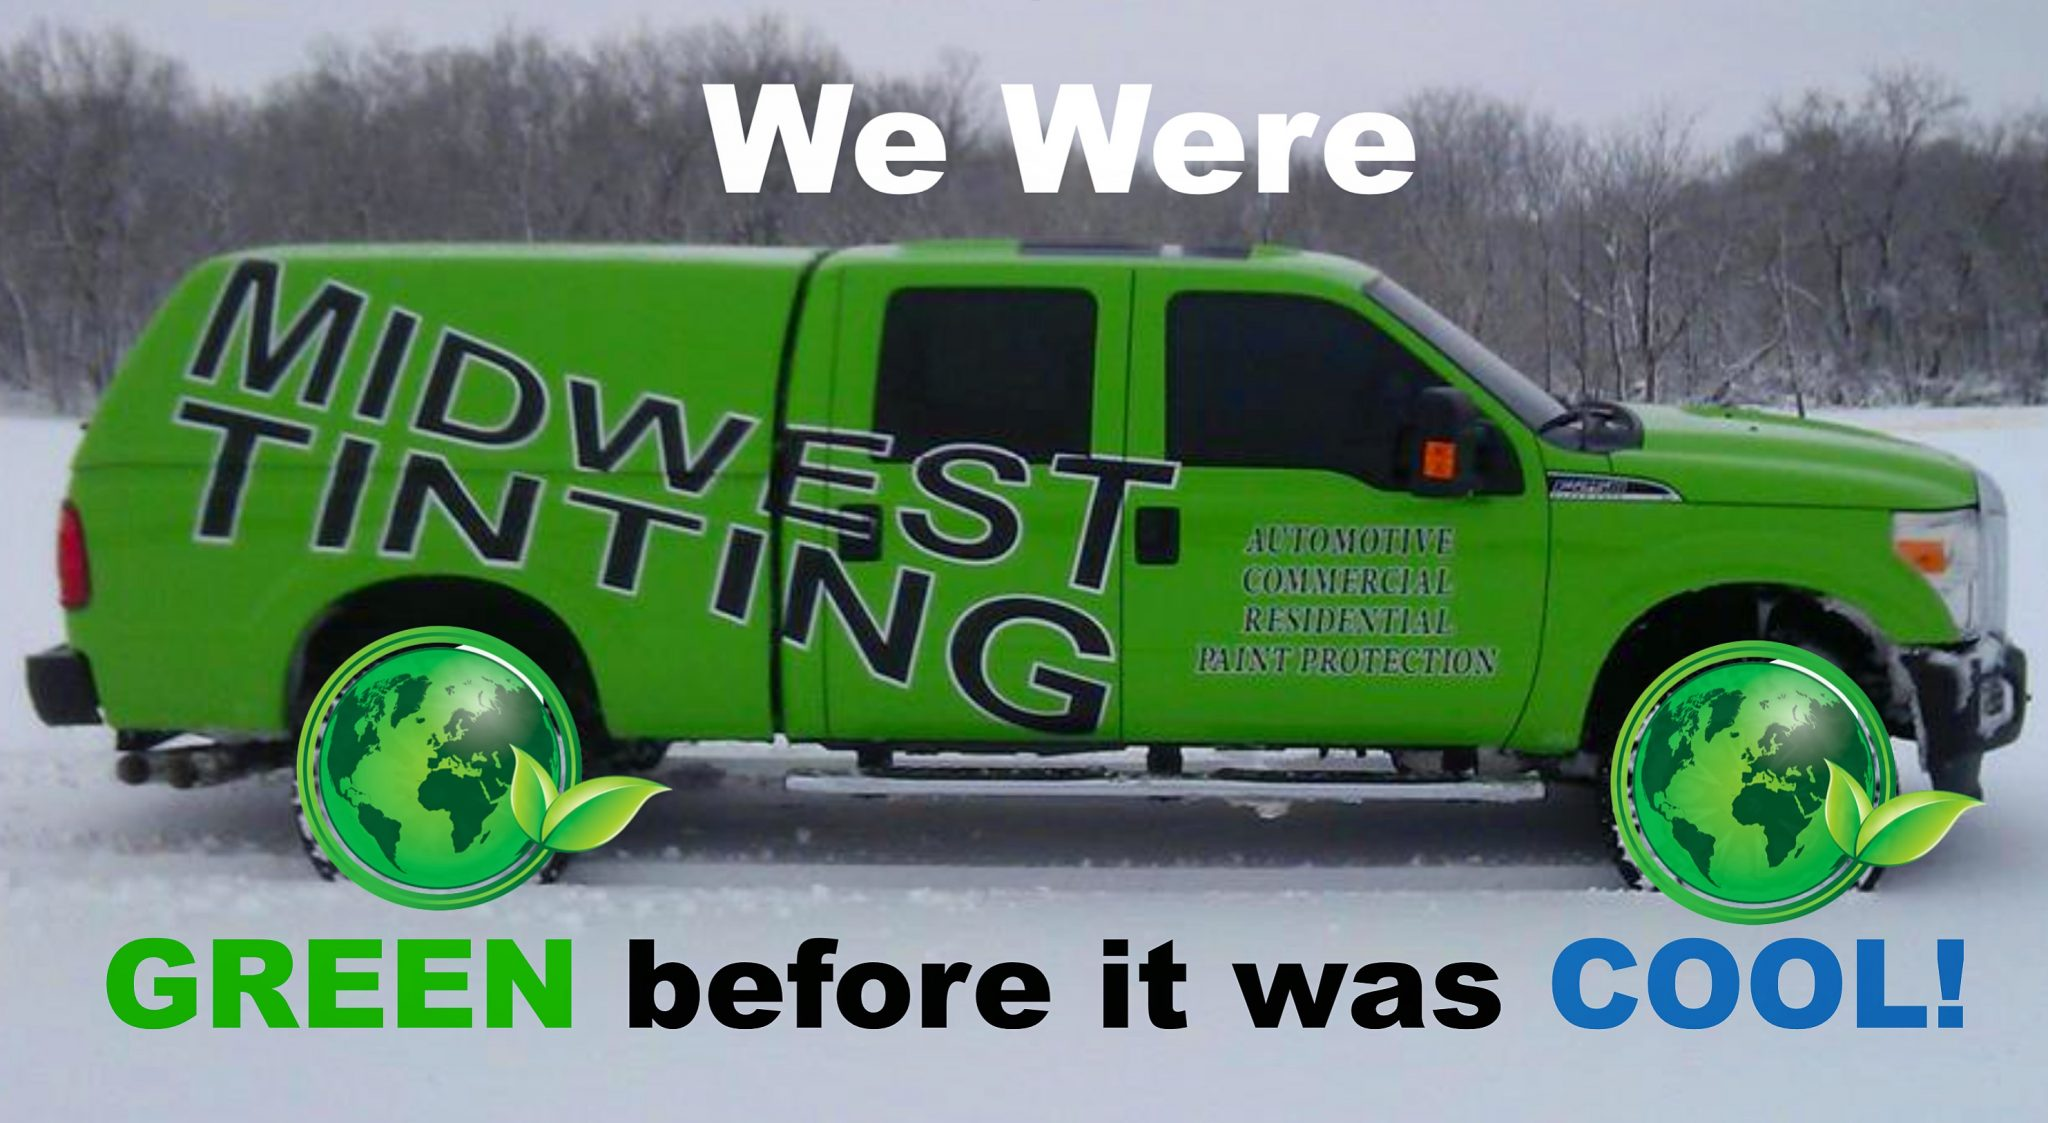 Midwest Tinting Kansas City - We Were Green Before it Was Cool!